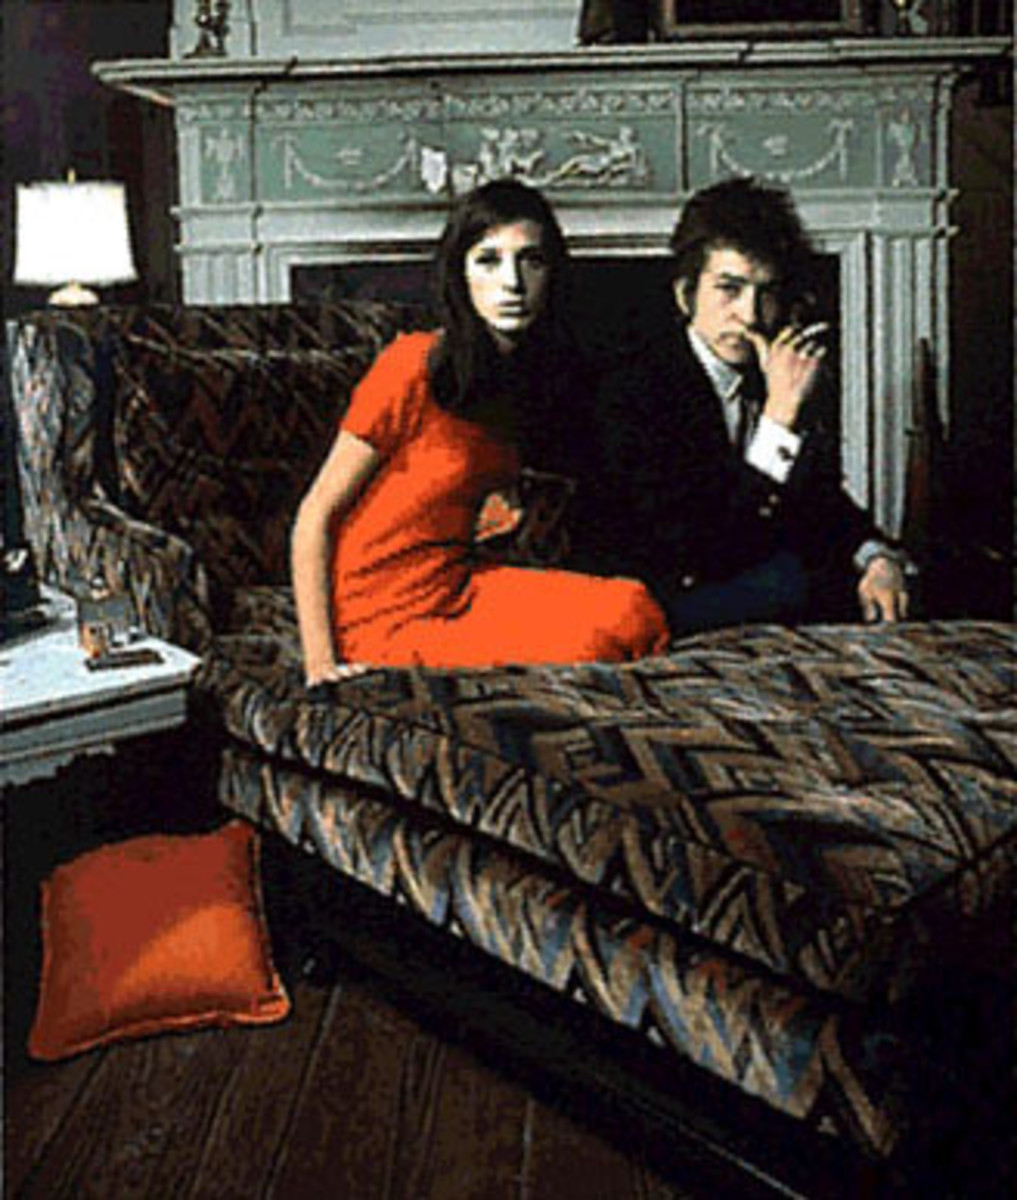 Sally Grossman and Bob Dylan (outtake from the Bringing It All Back Home photo shoot)